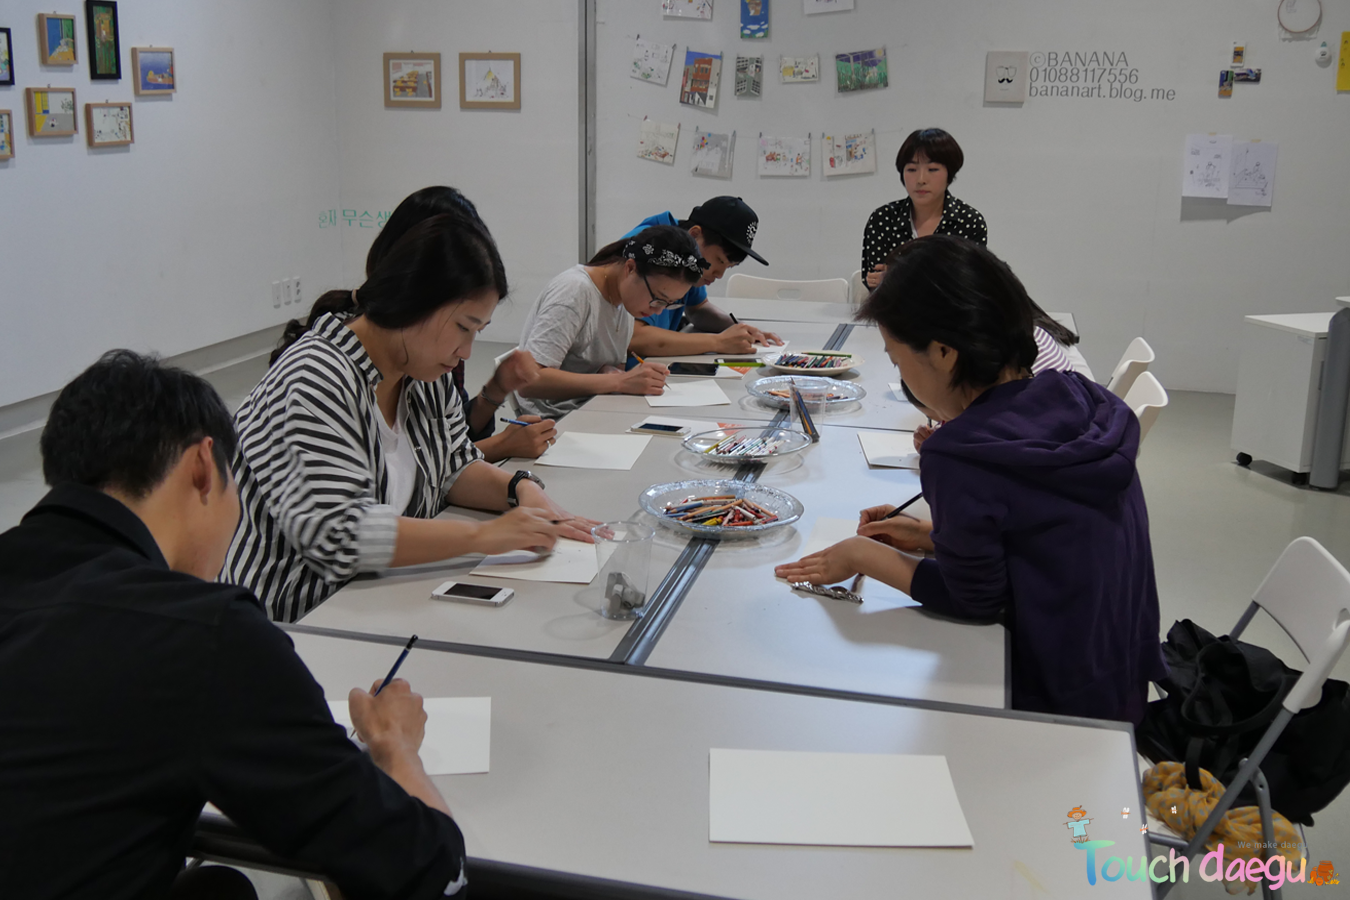 People are learning draw at Daegu Art Factory